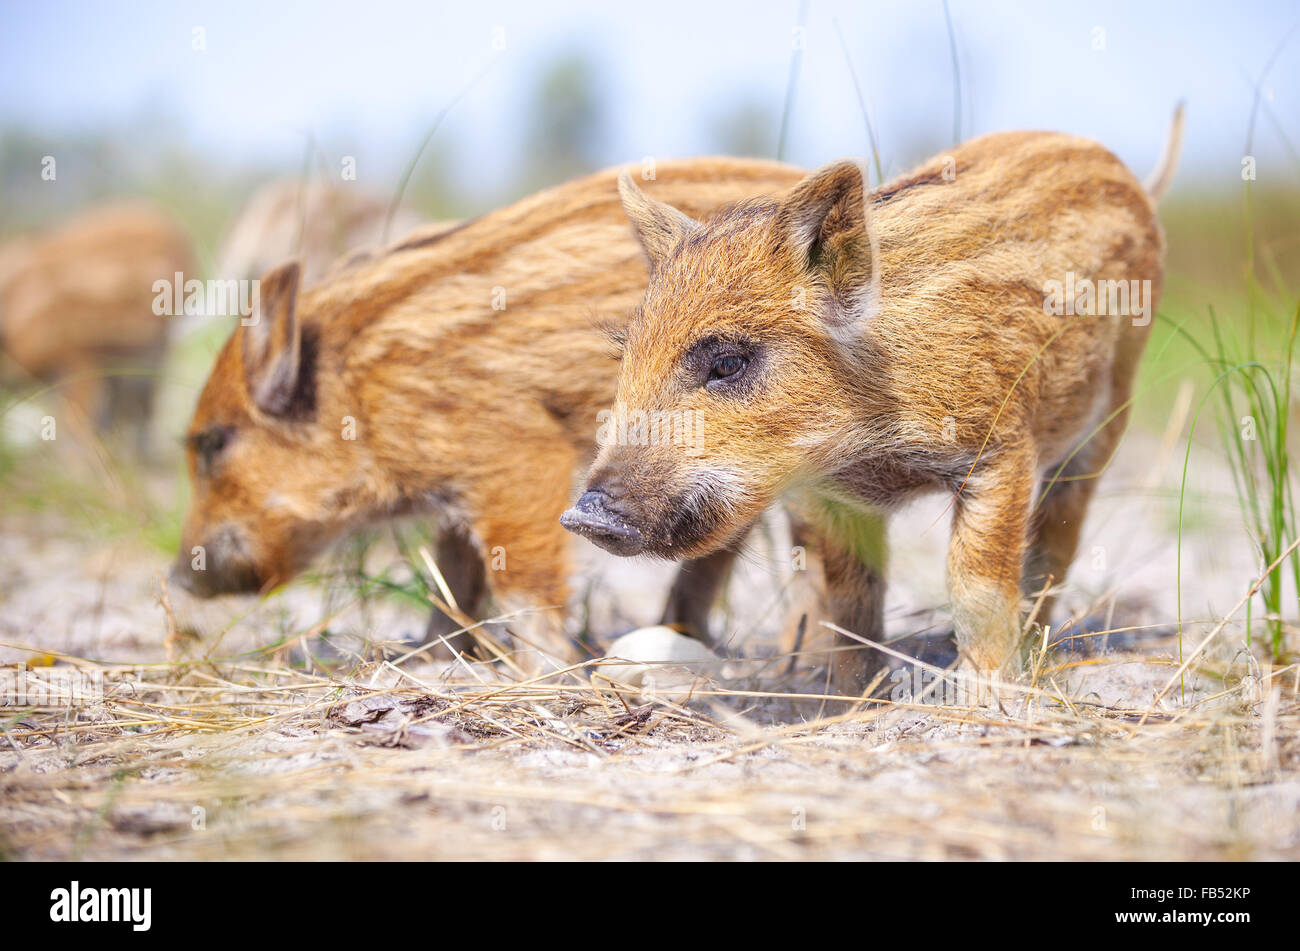 Wild piglets on summer day - Stock Image